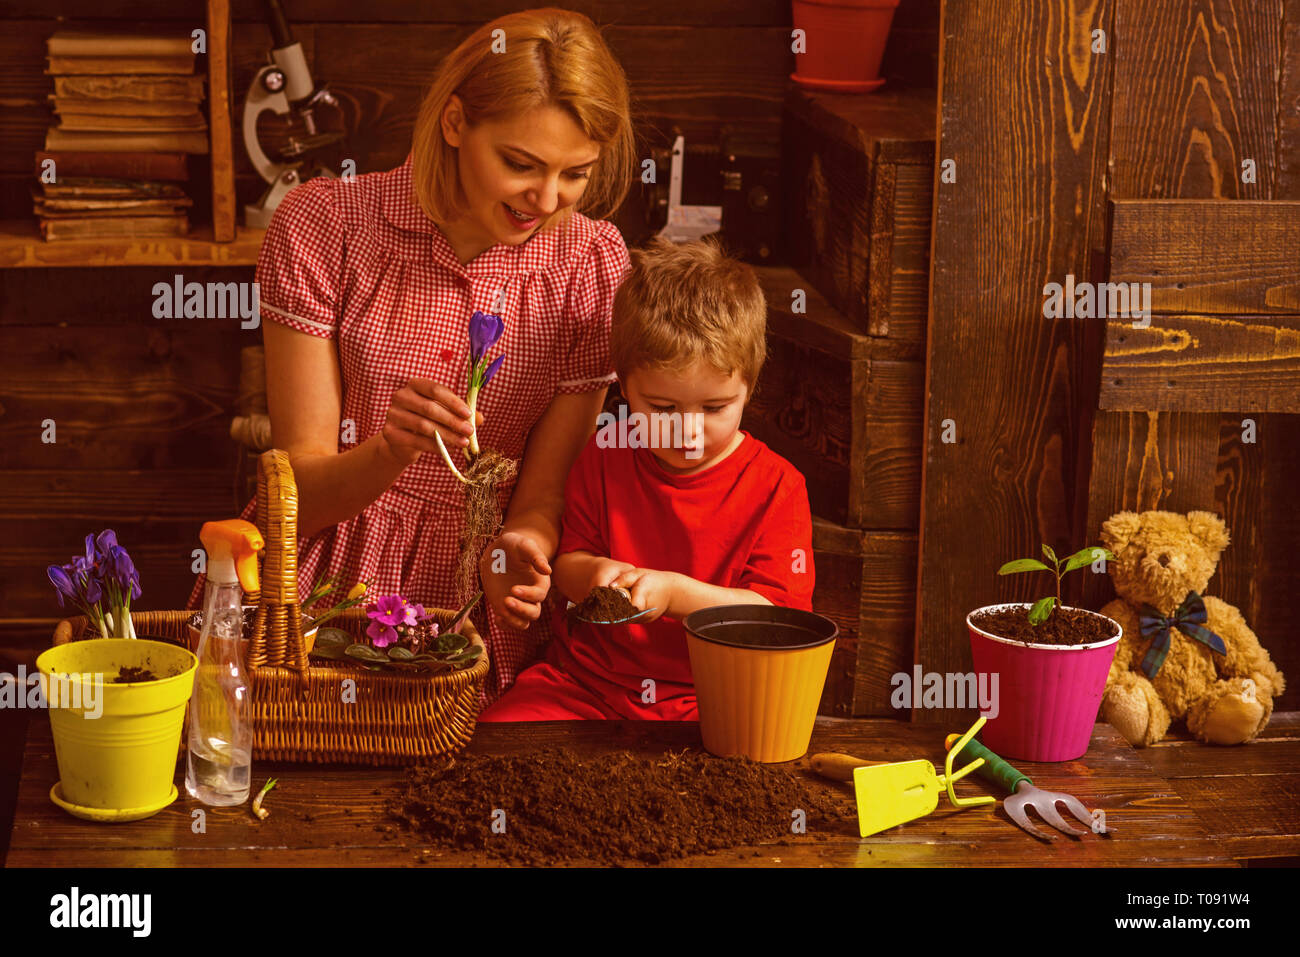 Love concept. Woman and little child plant flowers with love. Grown with love. Love and protect nature - Stock Image